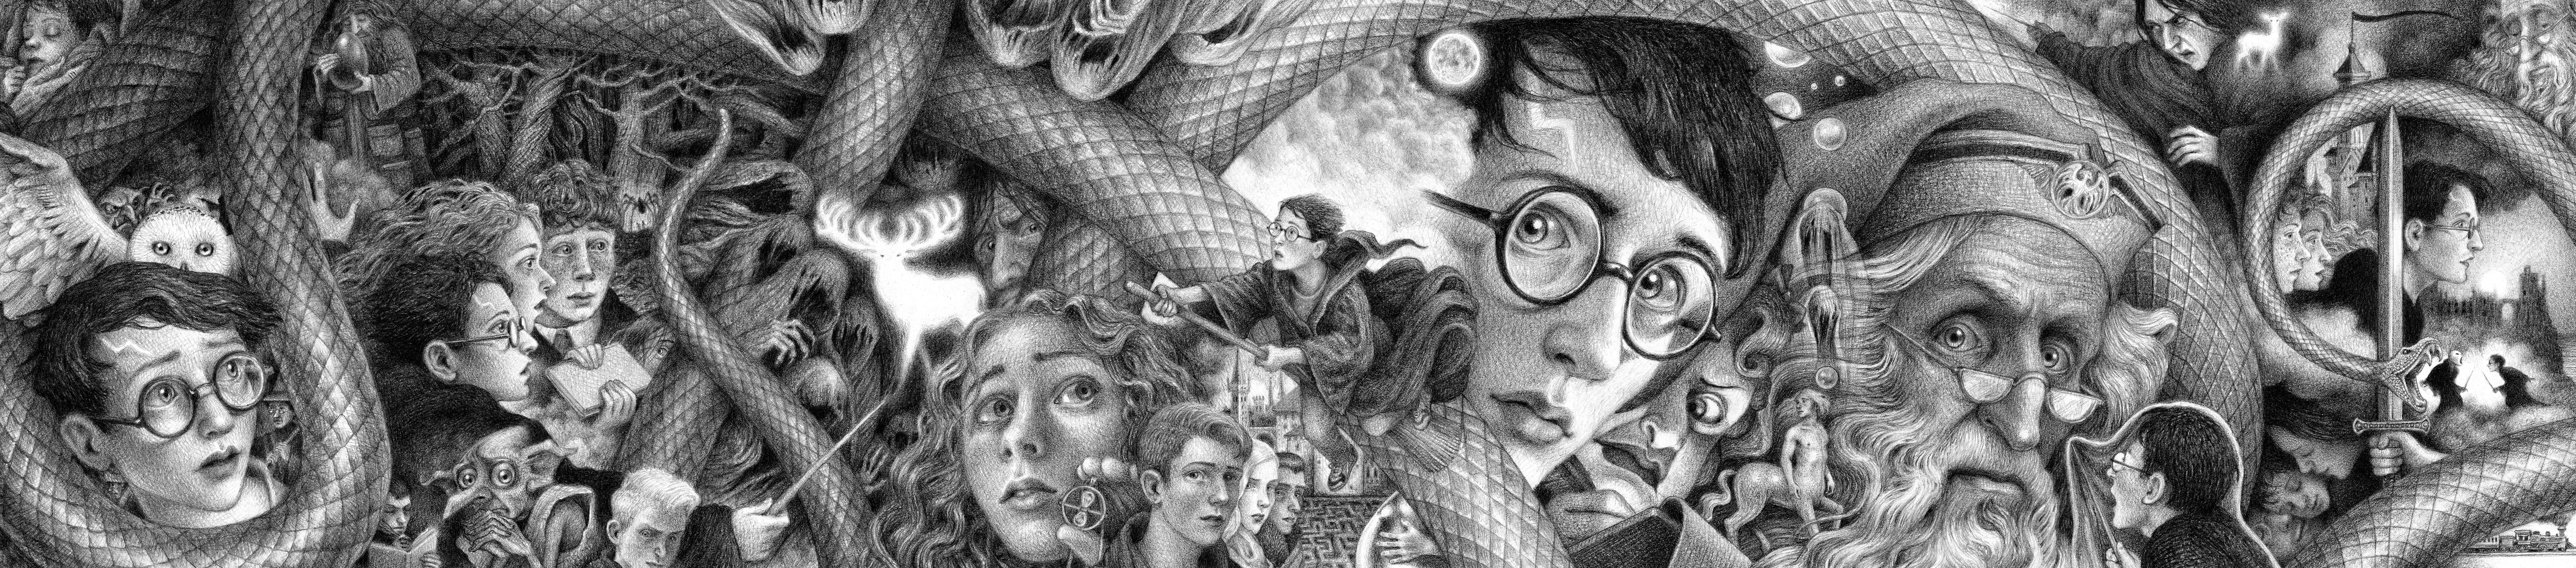 Harry potter 20th anniversary timeline